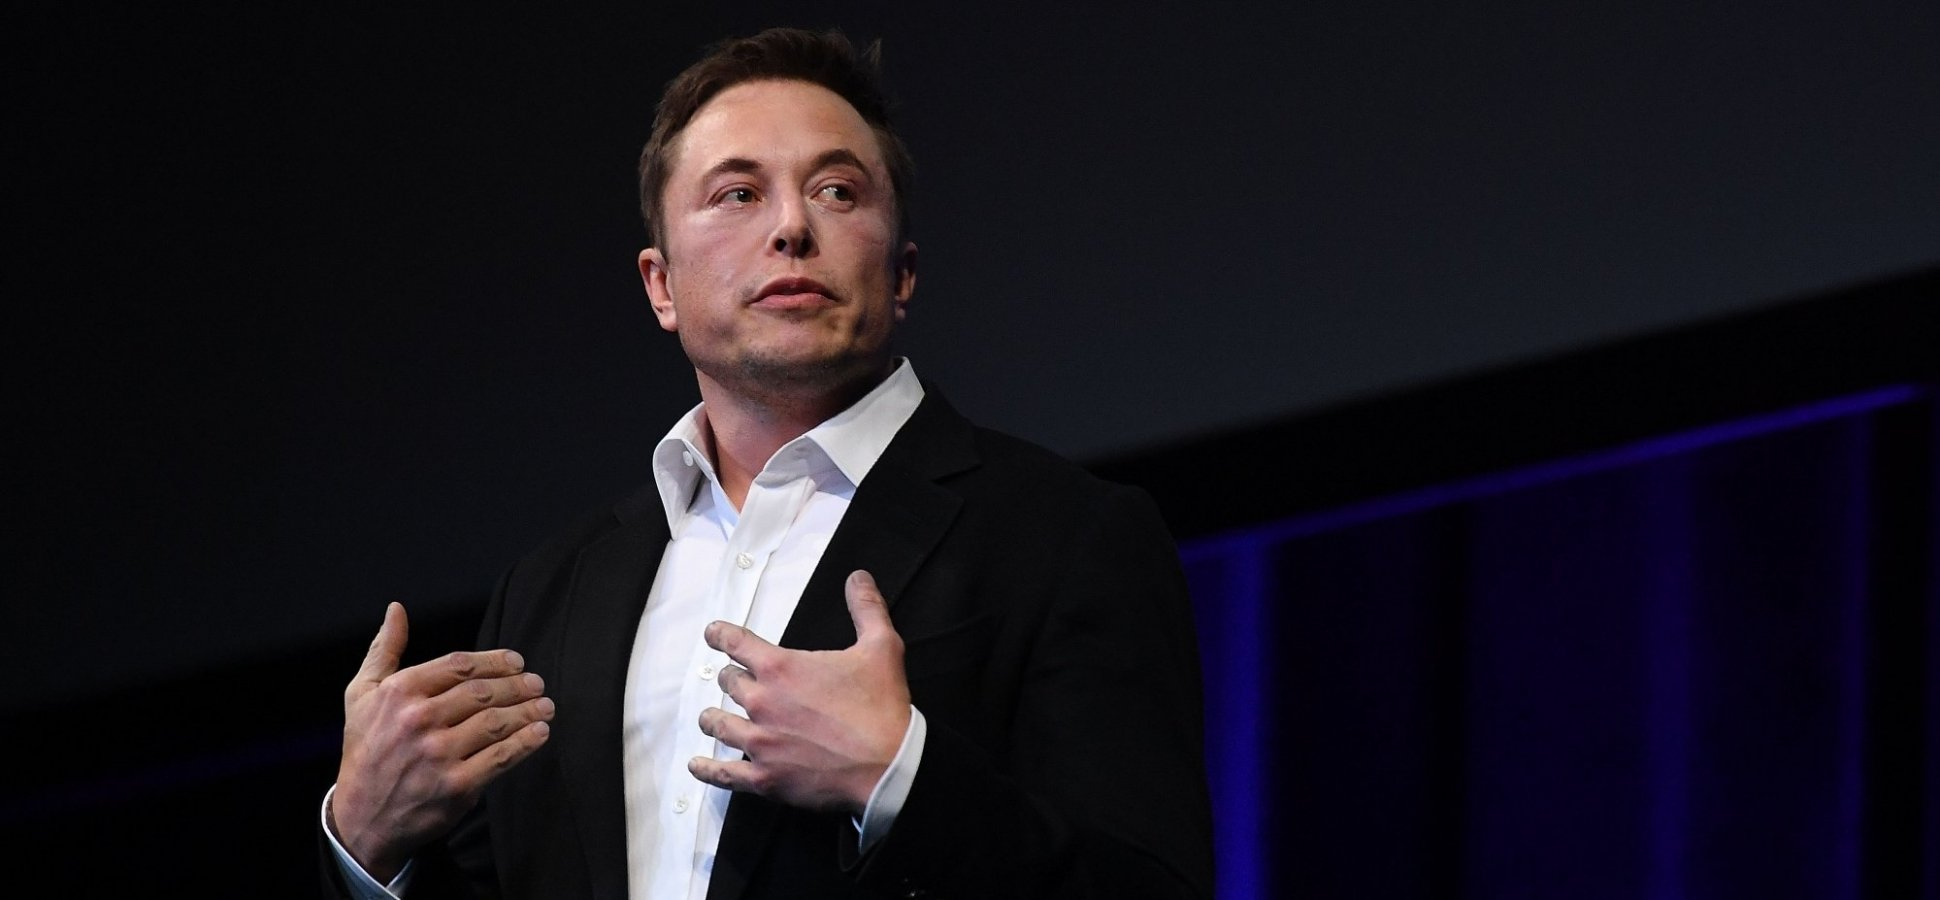 Elon Musk Wants to Blanket the World With the Best Satellite Internet Service Ever. The FCC Just Said Yes